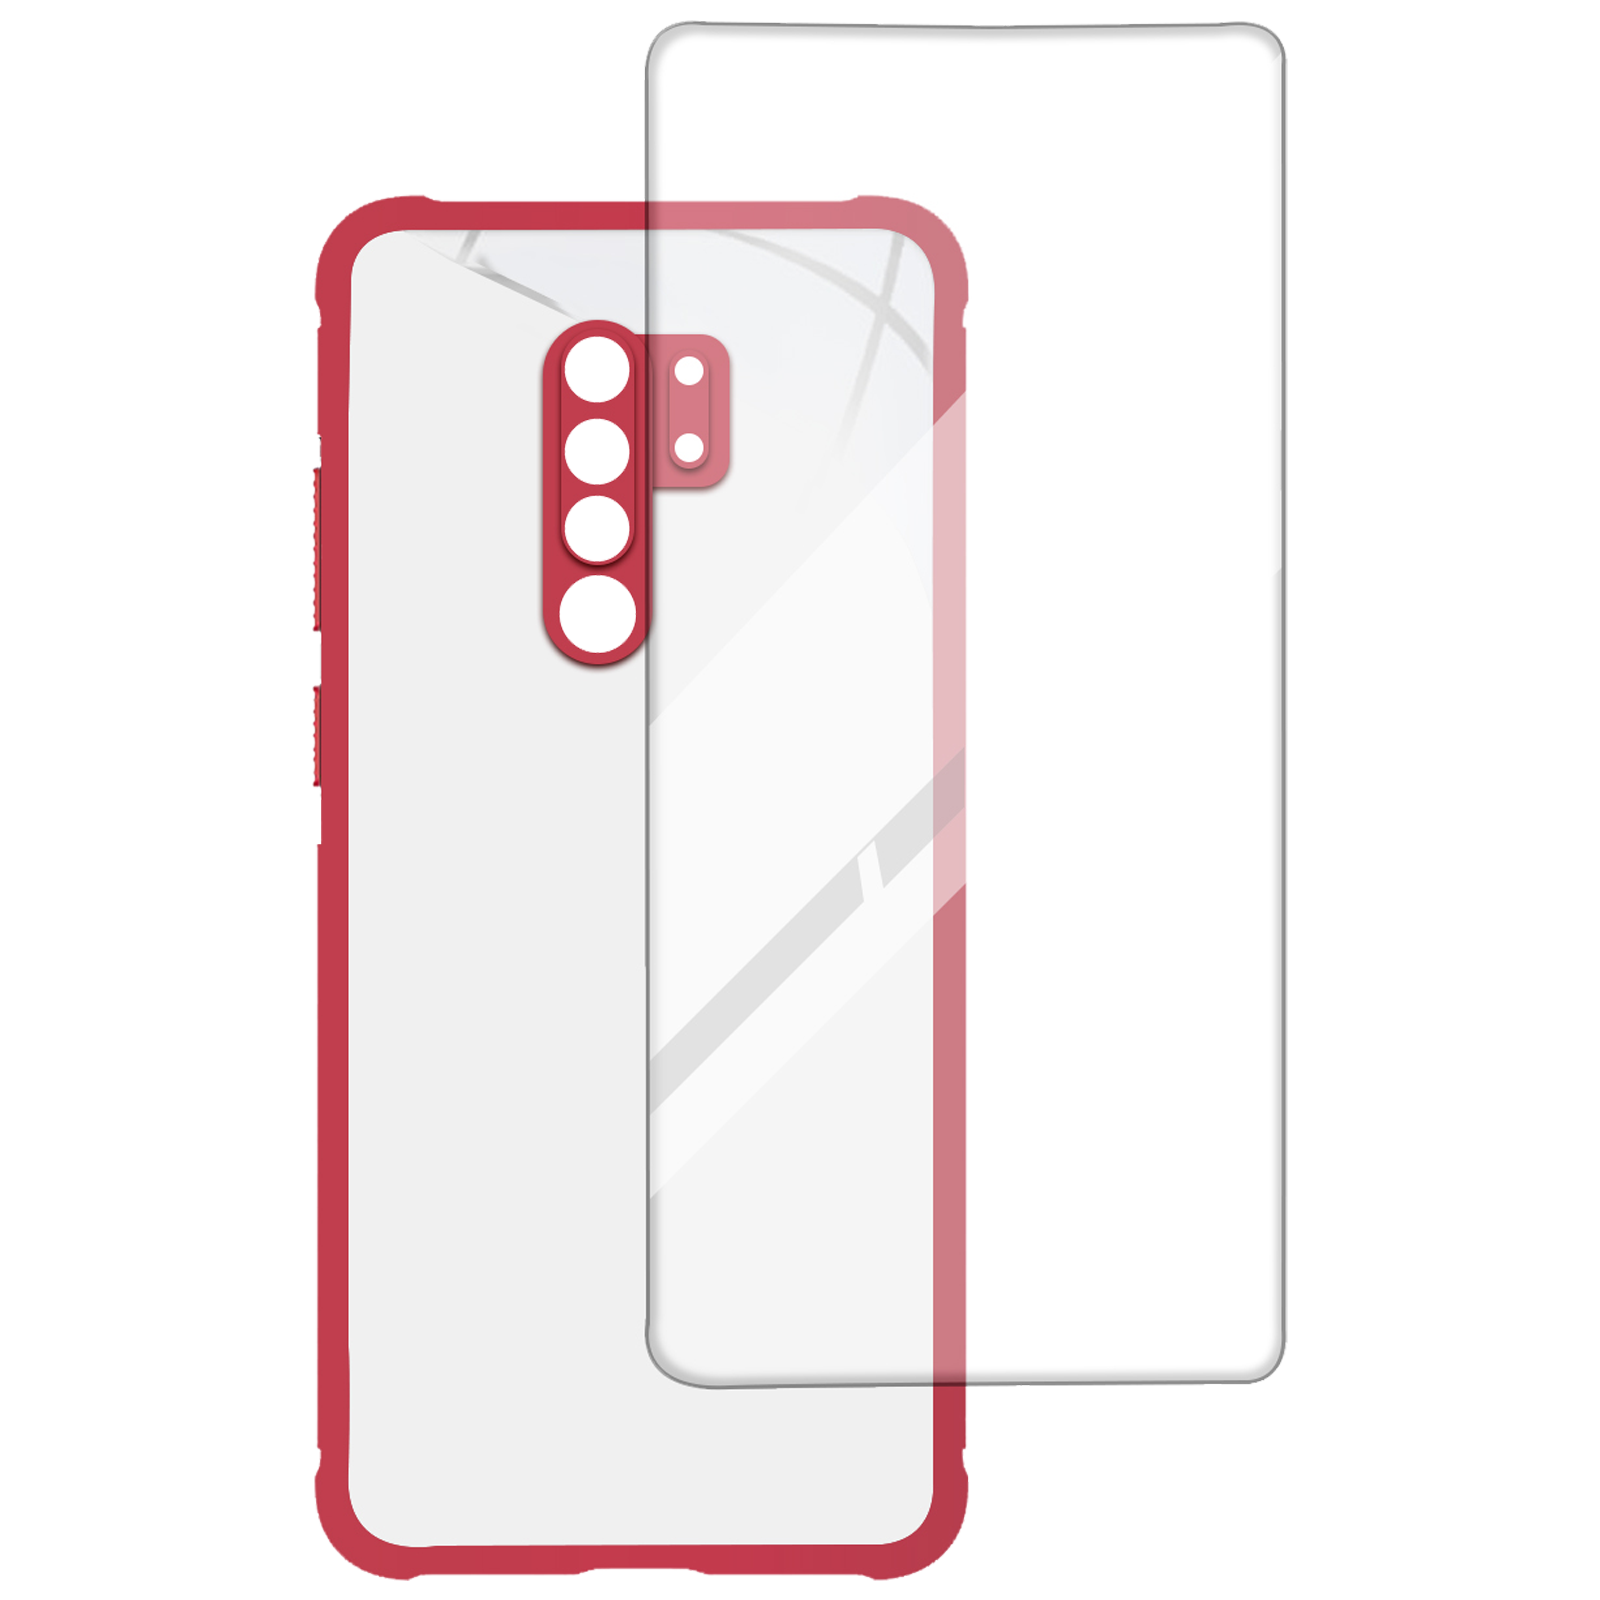 Arrow Hybrid Back Case and Screen Protector Bundle For Redmi 9 Prime (Ultra Transparent Visibility, AR-1020, Red)_1